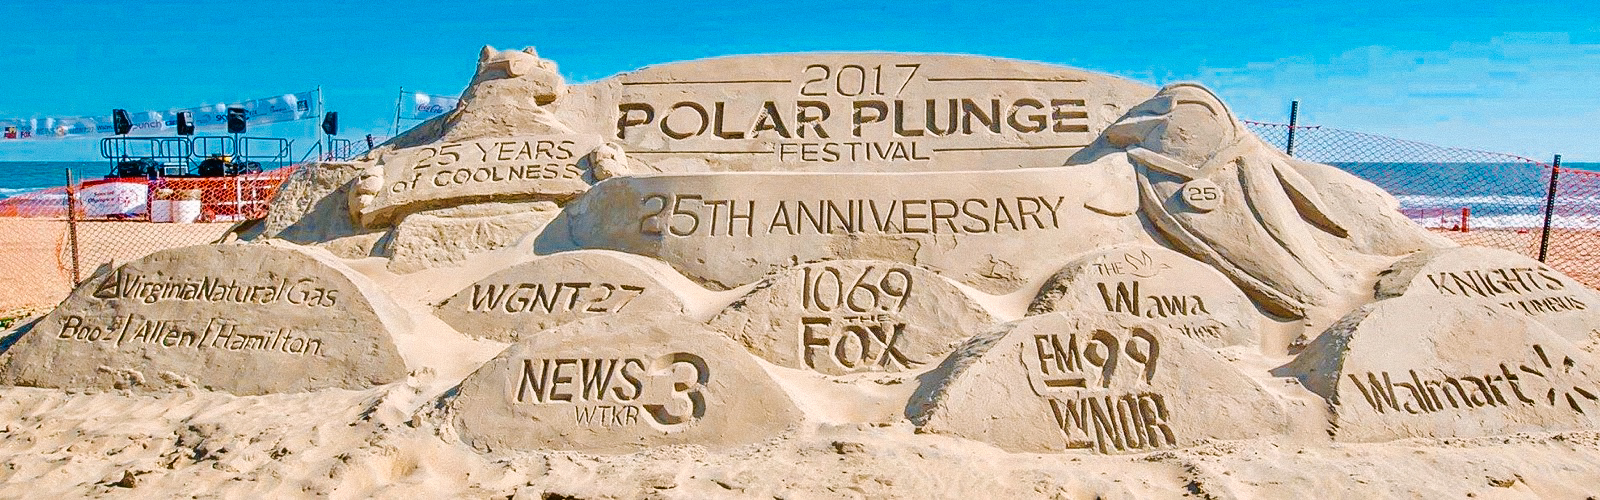 There were many sponsors at this year's Polar Plunge, all for a good cause!